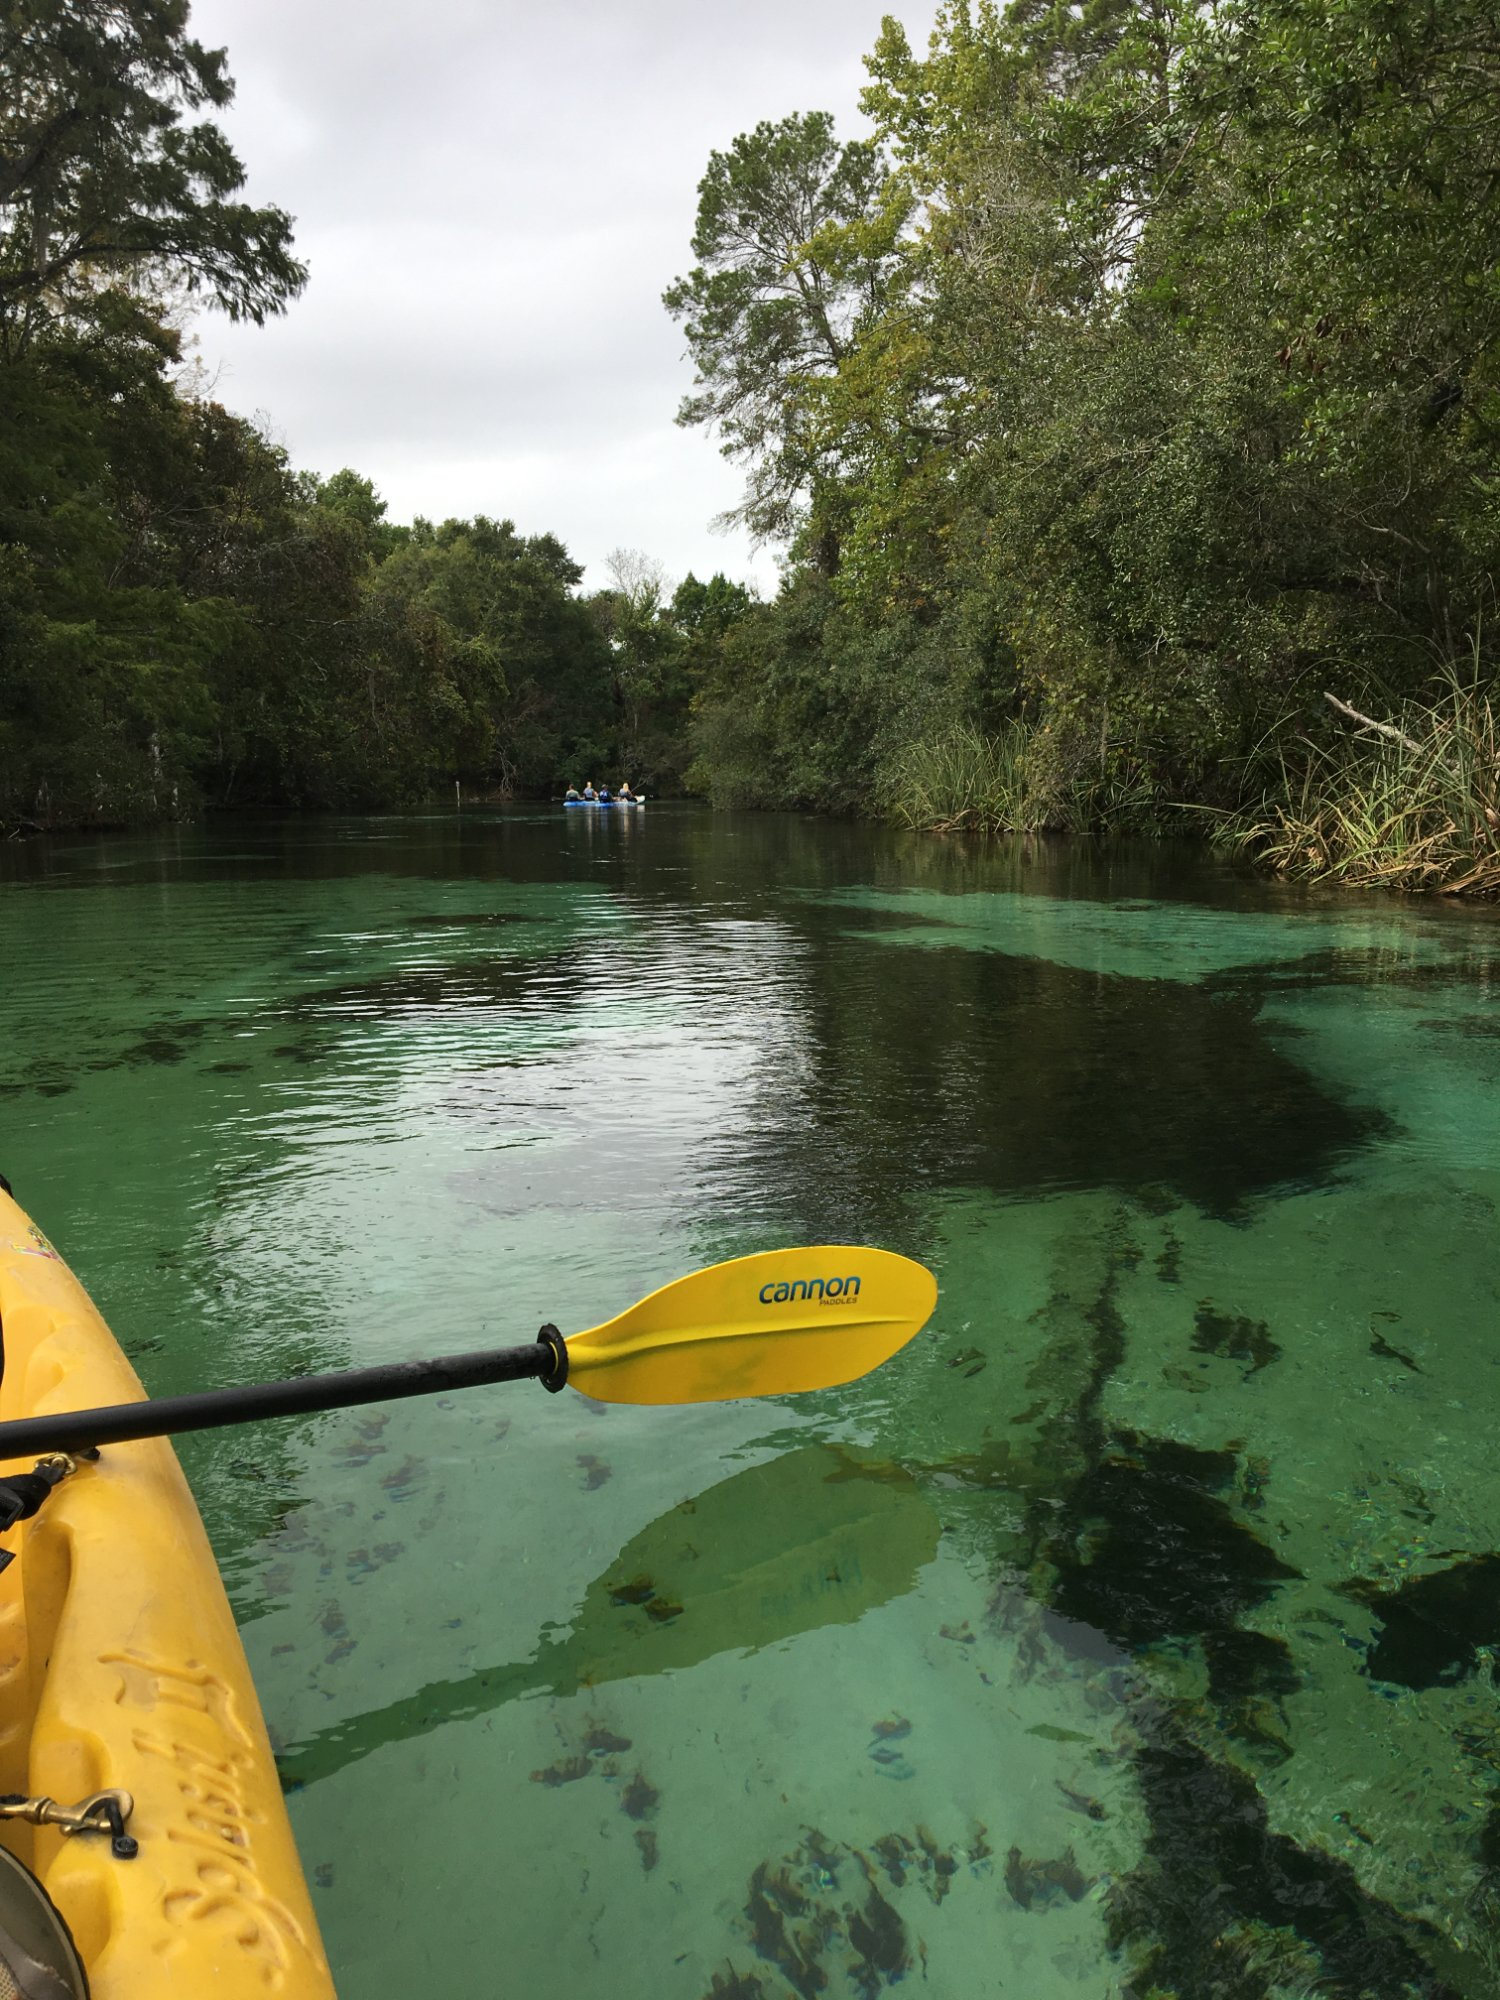 Great place to kayak